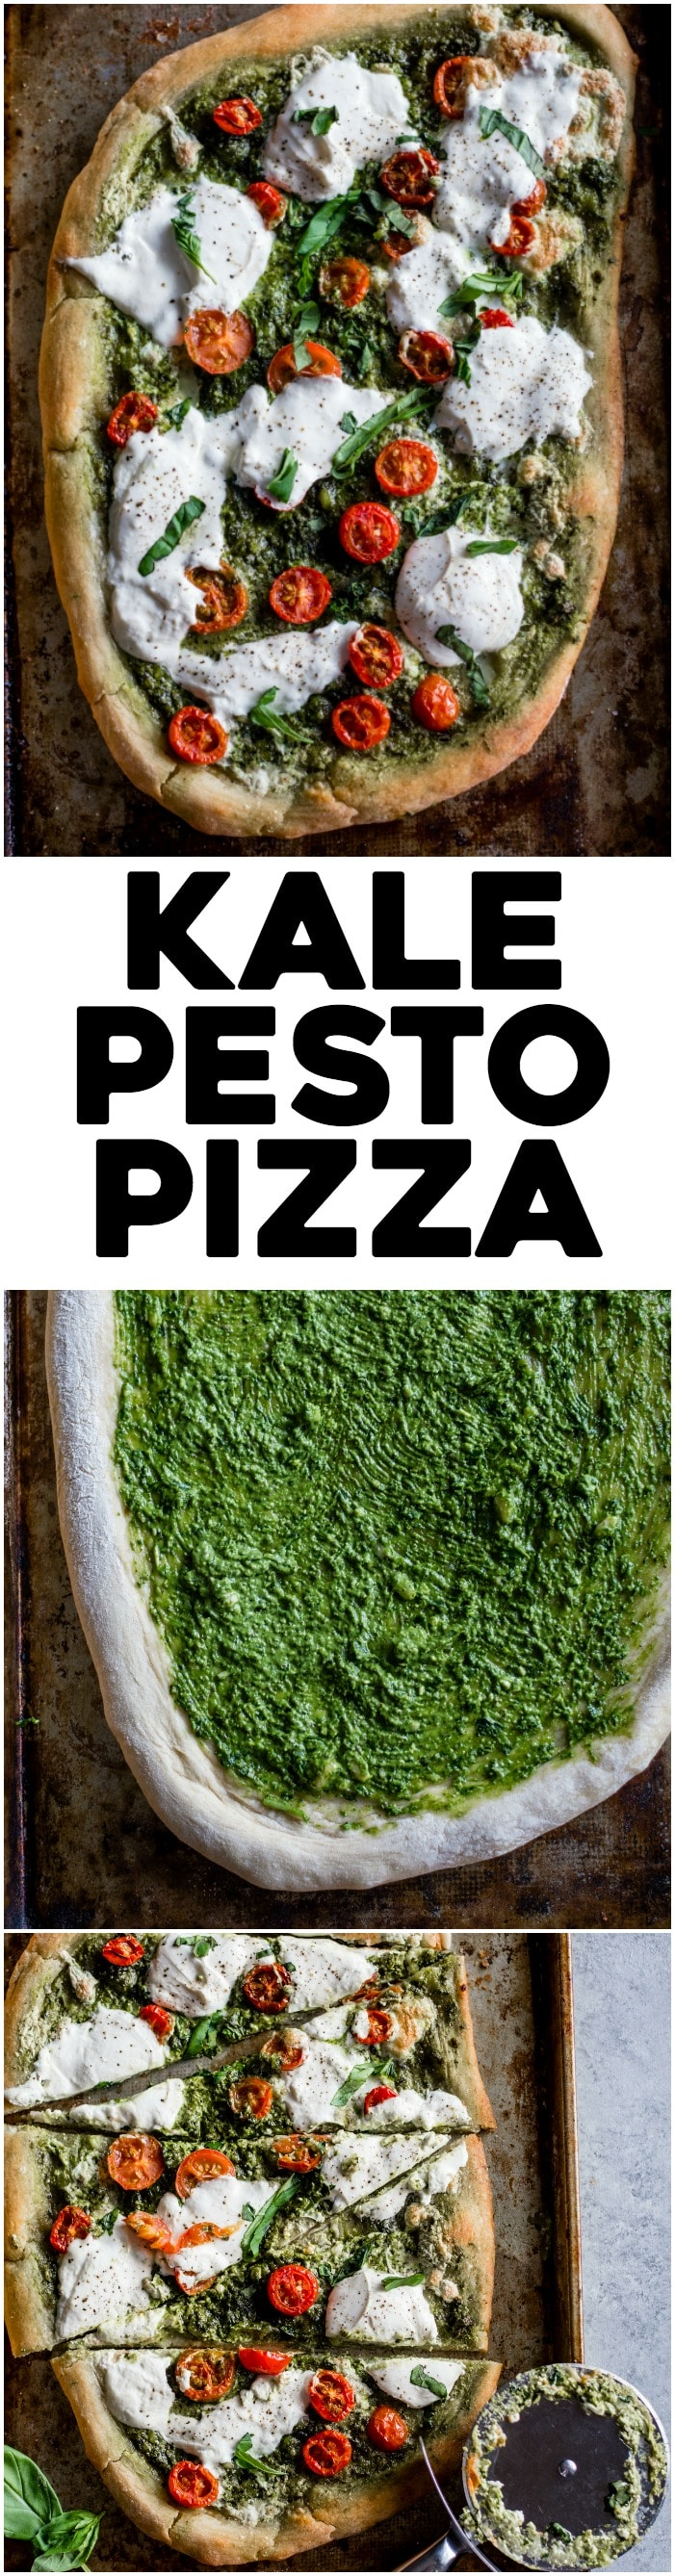 Kale Pesto Pizza | Homemade pizza topped with a simple yet flavorful kale pesto and burrata cheese | thealmondeater.com